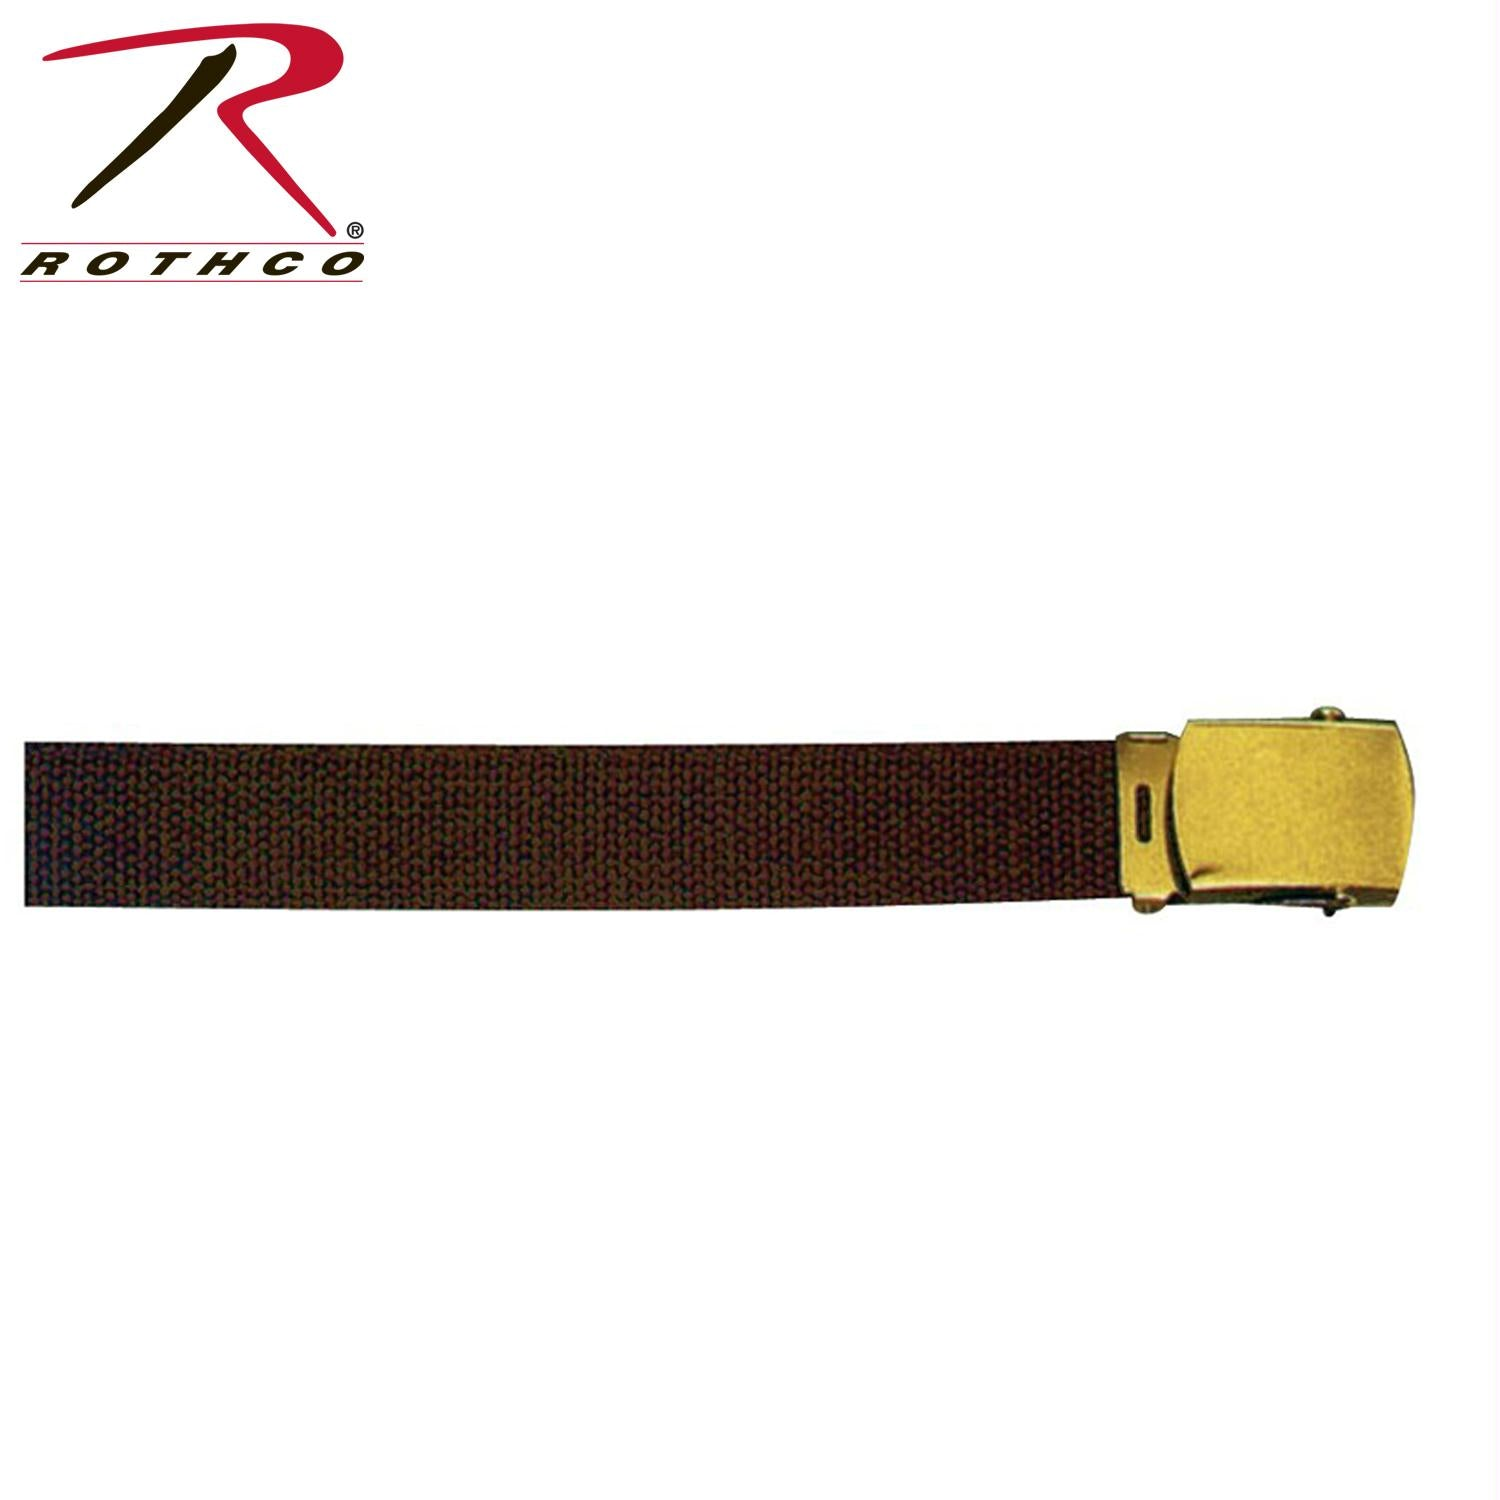 Rothco 54 Inch Military Web Belts - Gold / Brown